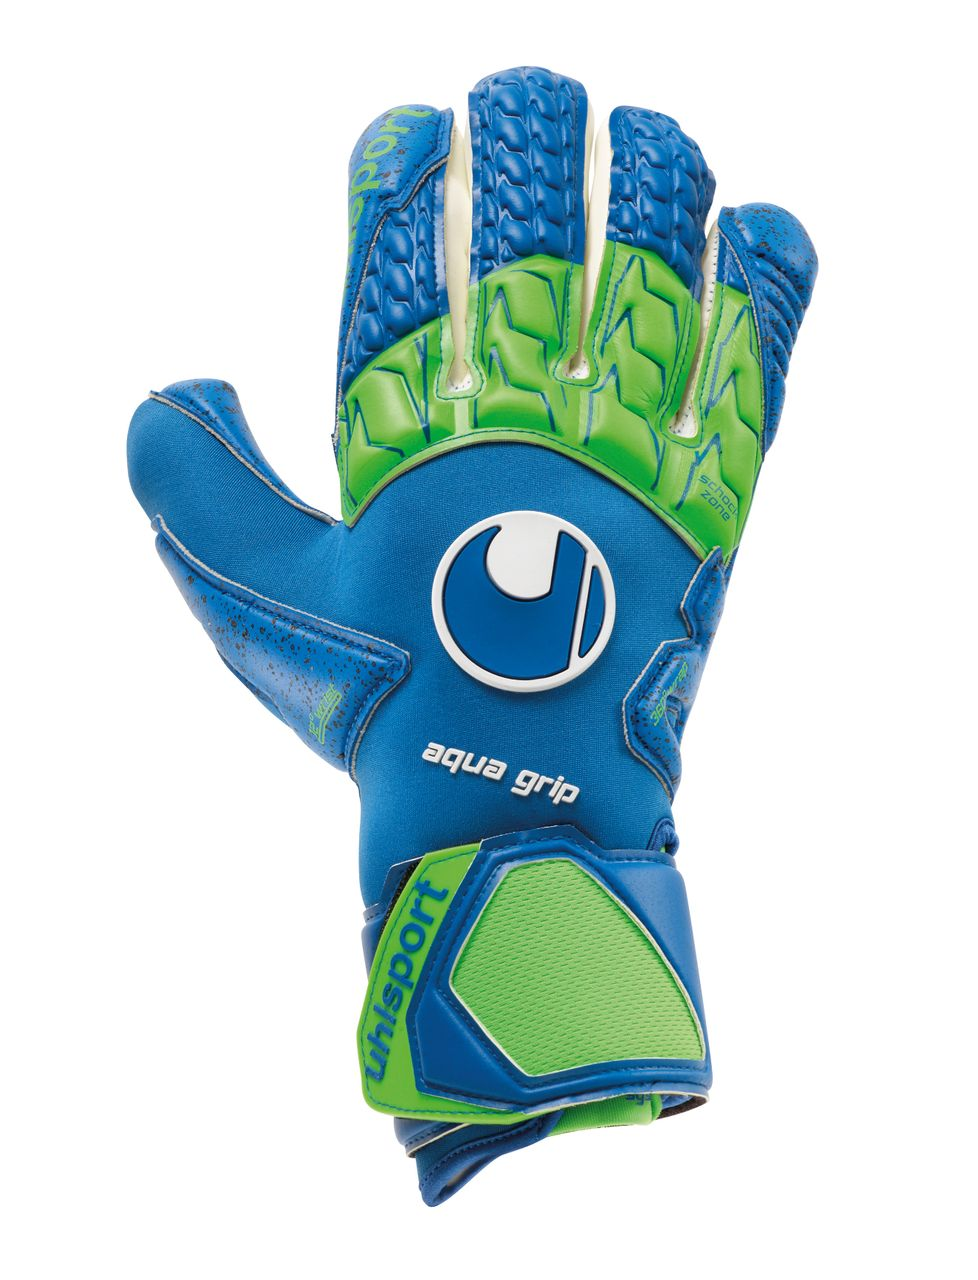 Uhlsport UHLSPORT AQUAGRIP HN